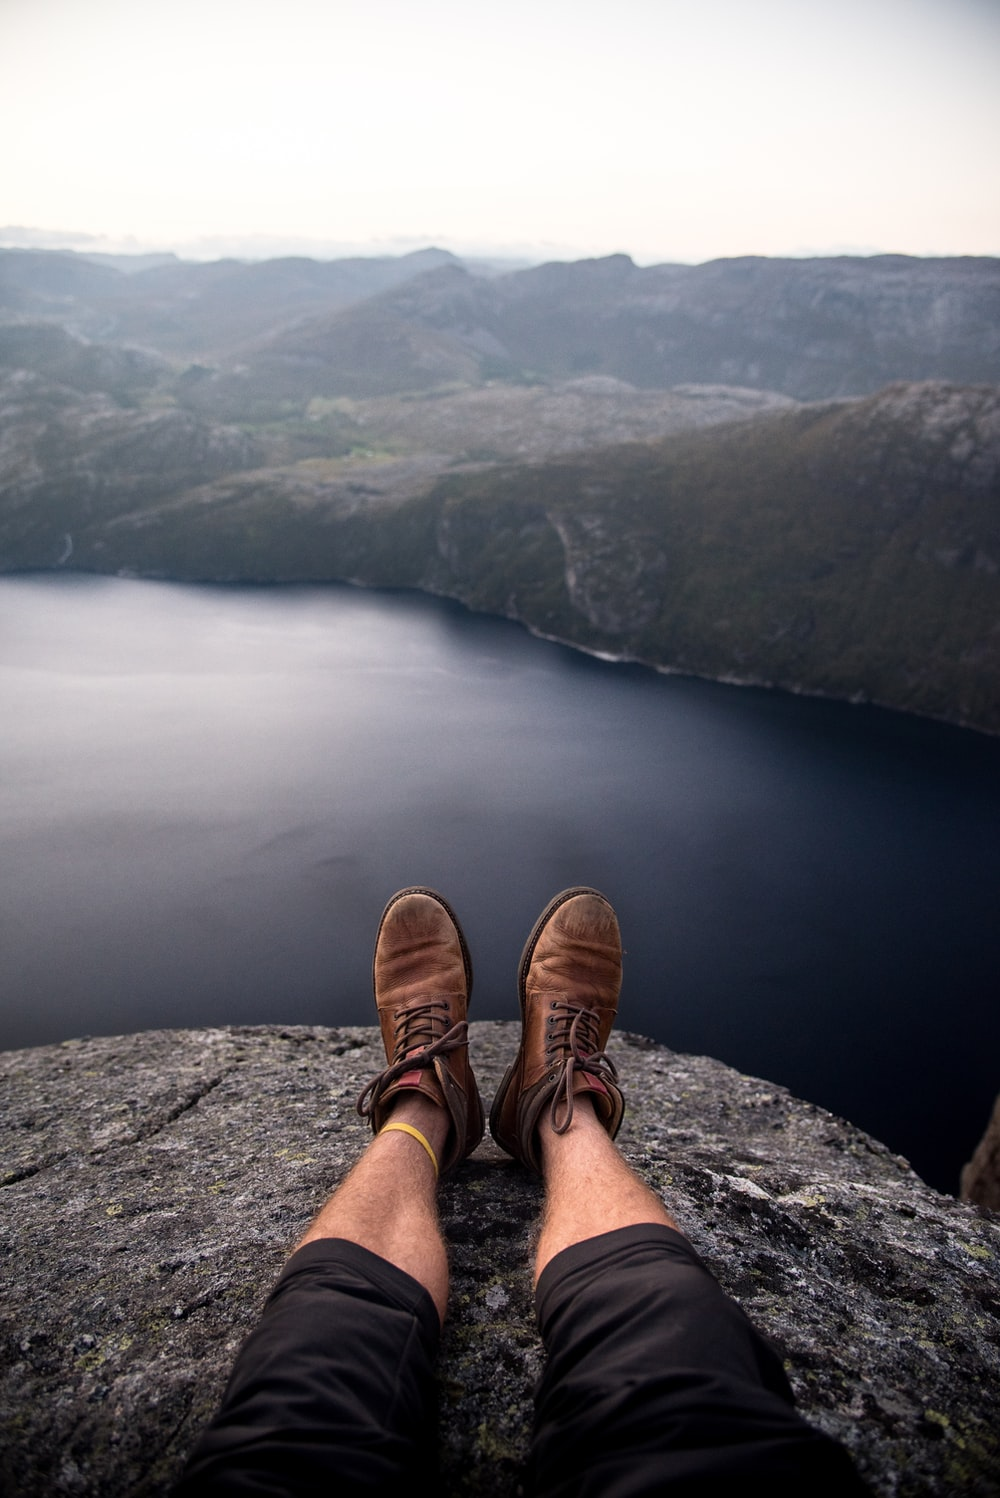 person wearing brown boots sitting on cliff in front of grey calm body of water and rock formations during daytime